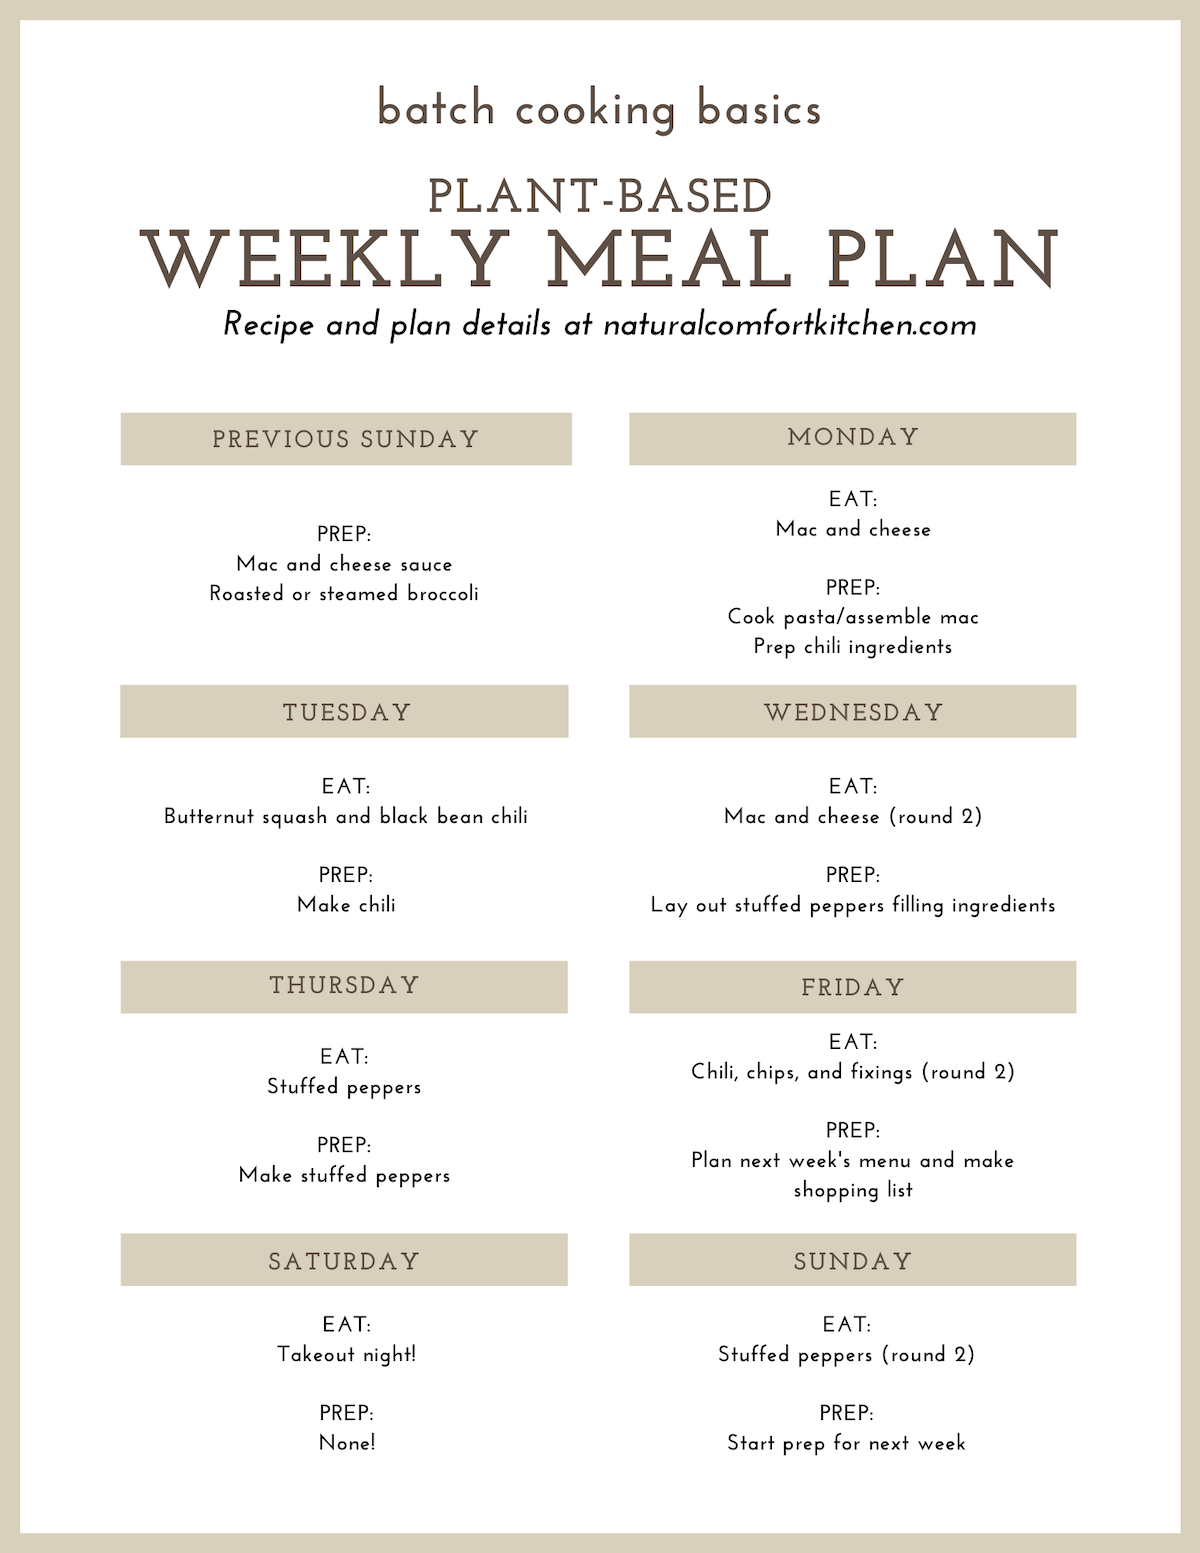 How to Batch Cook a Delicious Weekly Plant Based Meal Plan